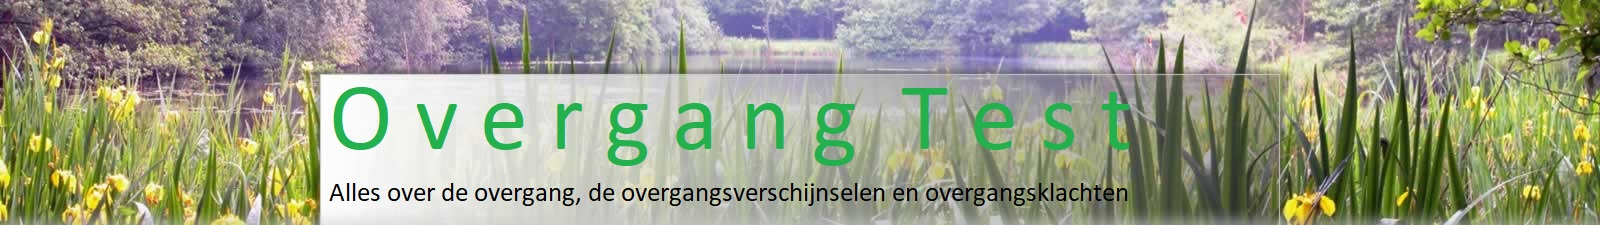 Overgang Test